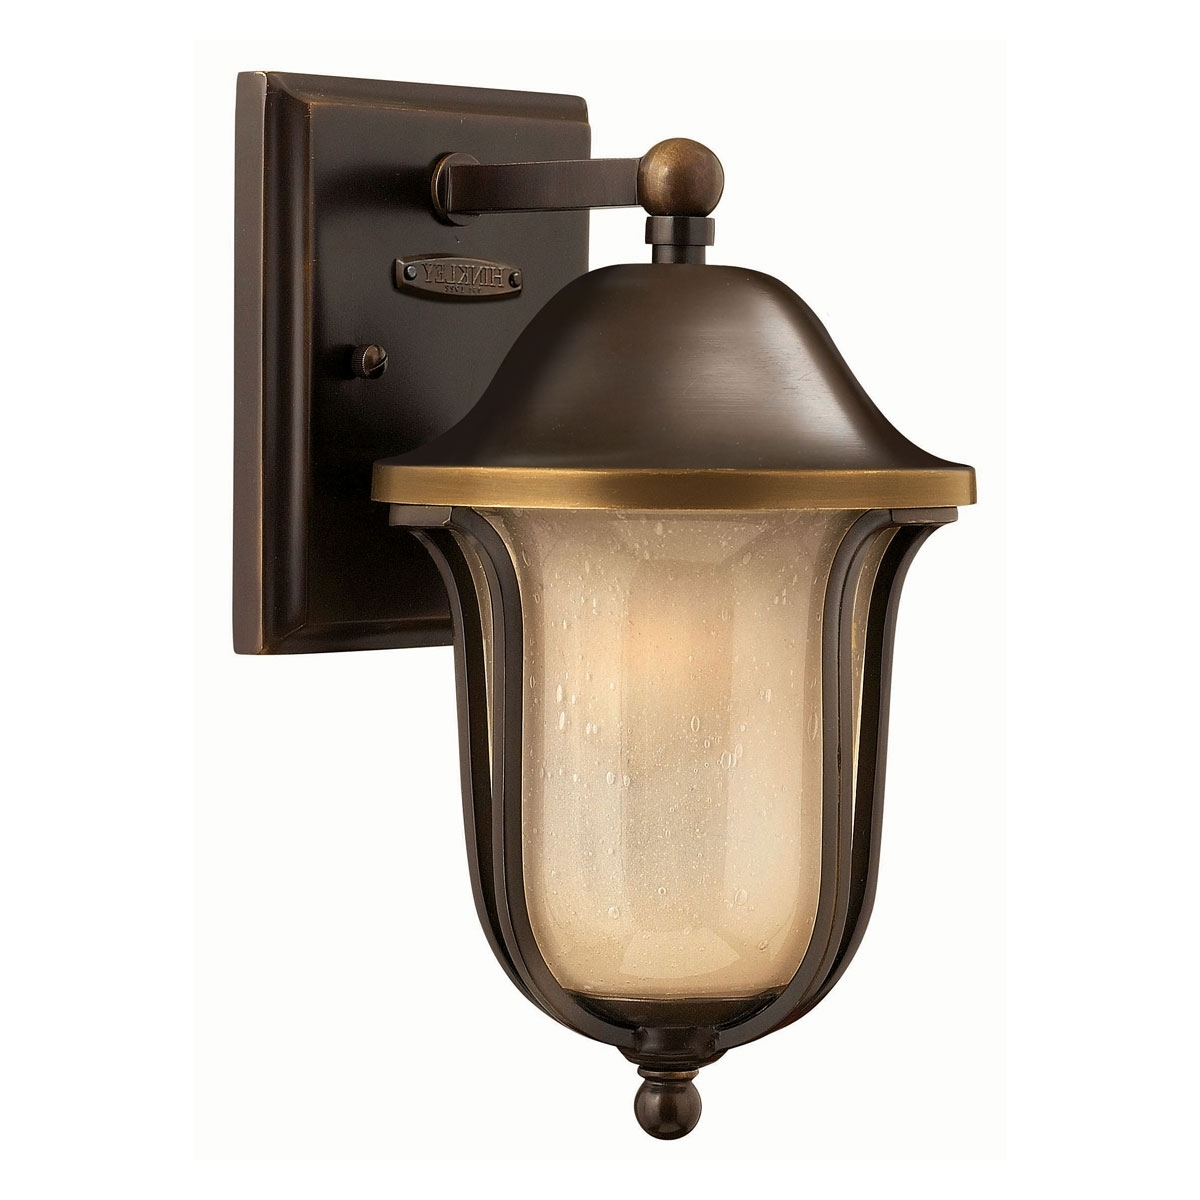 Diy : 2636Ob Mini Outdoor Wall Light Bolla Olde Bronze Hinkley For Most Up To Date Canadian Tire Outdoor Wall Lighting (View 10 of 20)